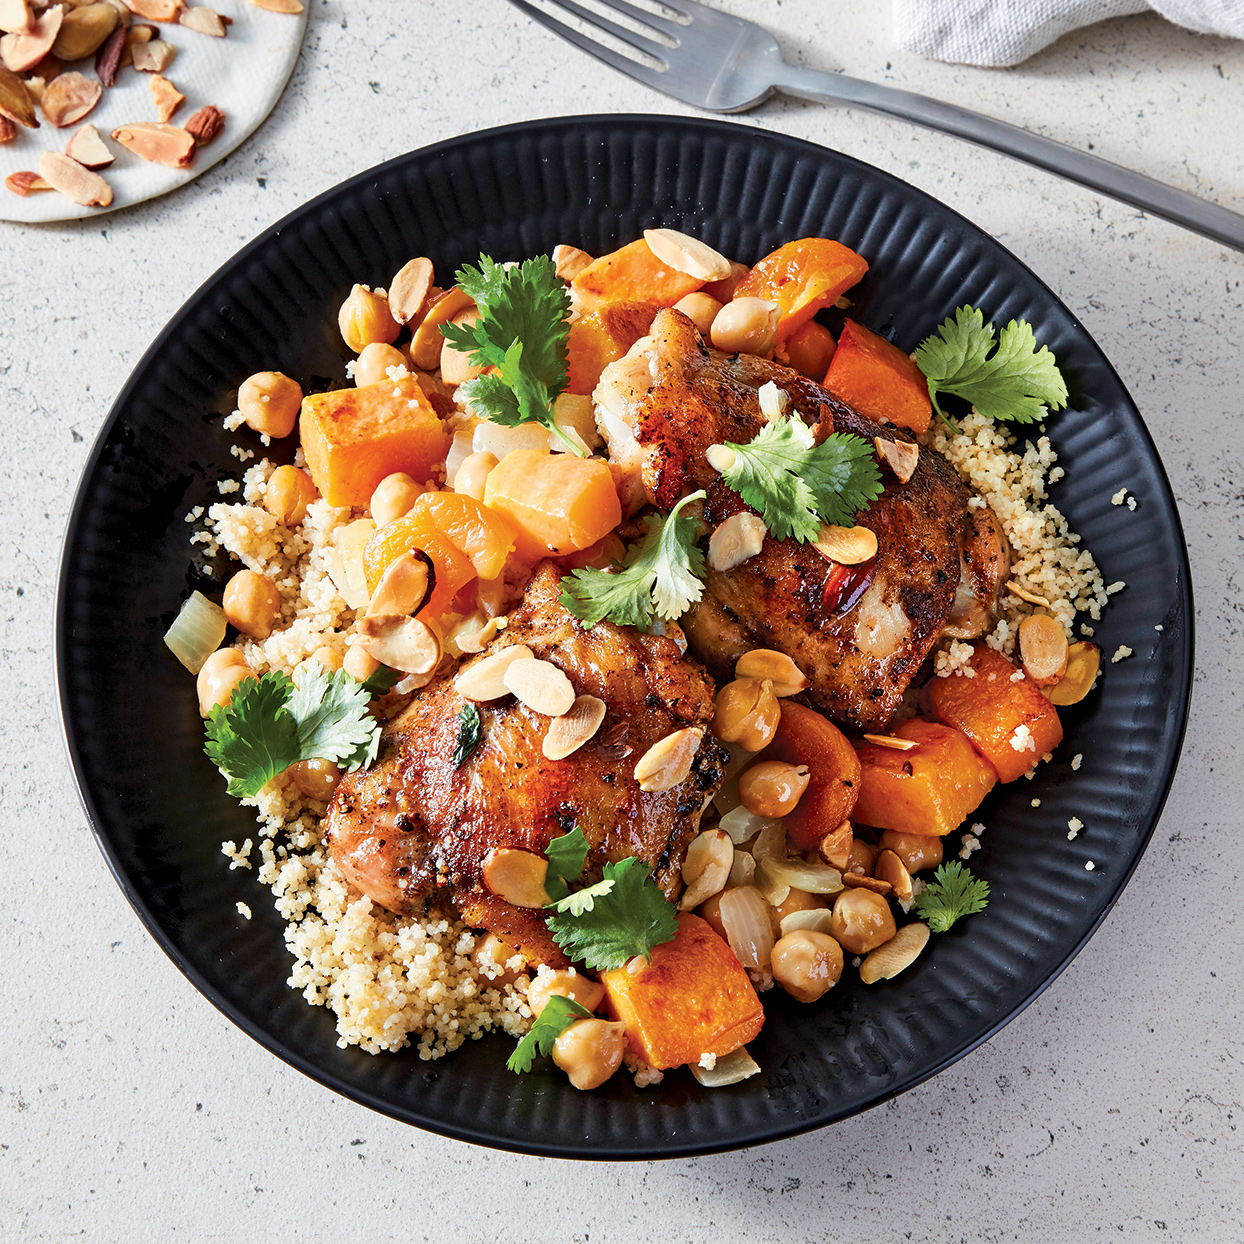 Loaded with chicken, onion, butternut squash, apricots, chickpeas and couscous, this slow-cooker recipe is not only bursting with color and texture, but it's also packed with protein and a host of vitamins and even contains a dose of fiber.